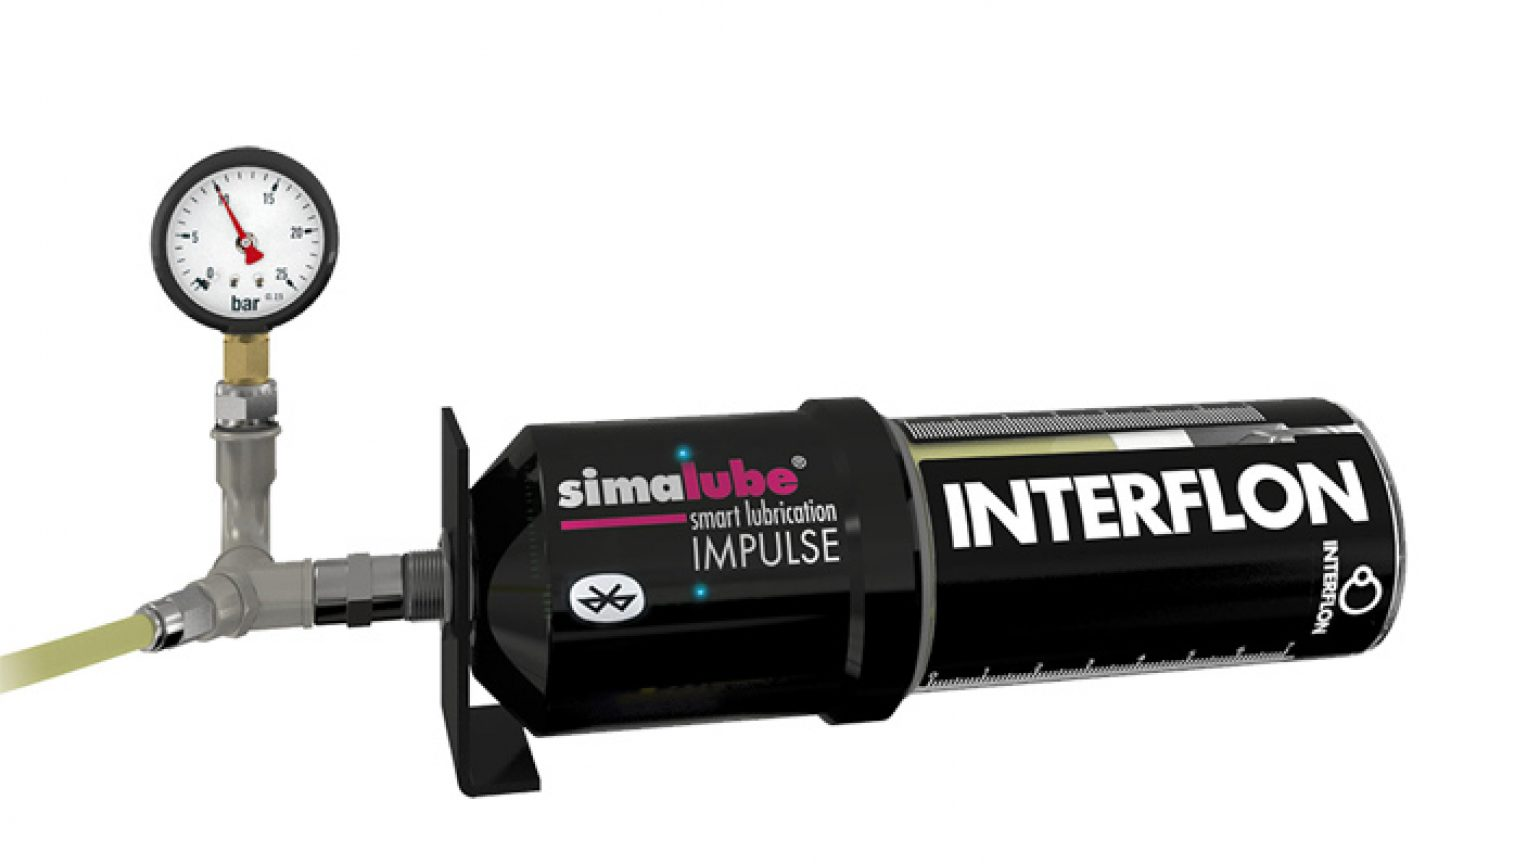 IMG SPL Impulse Connect product